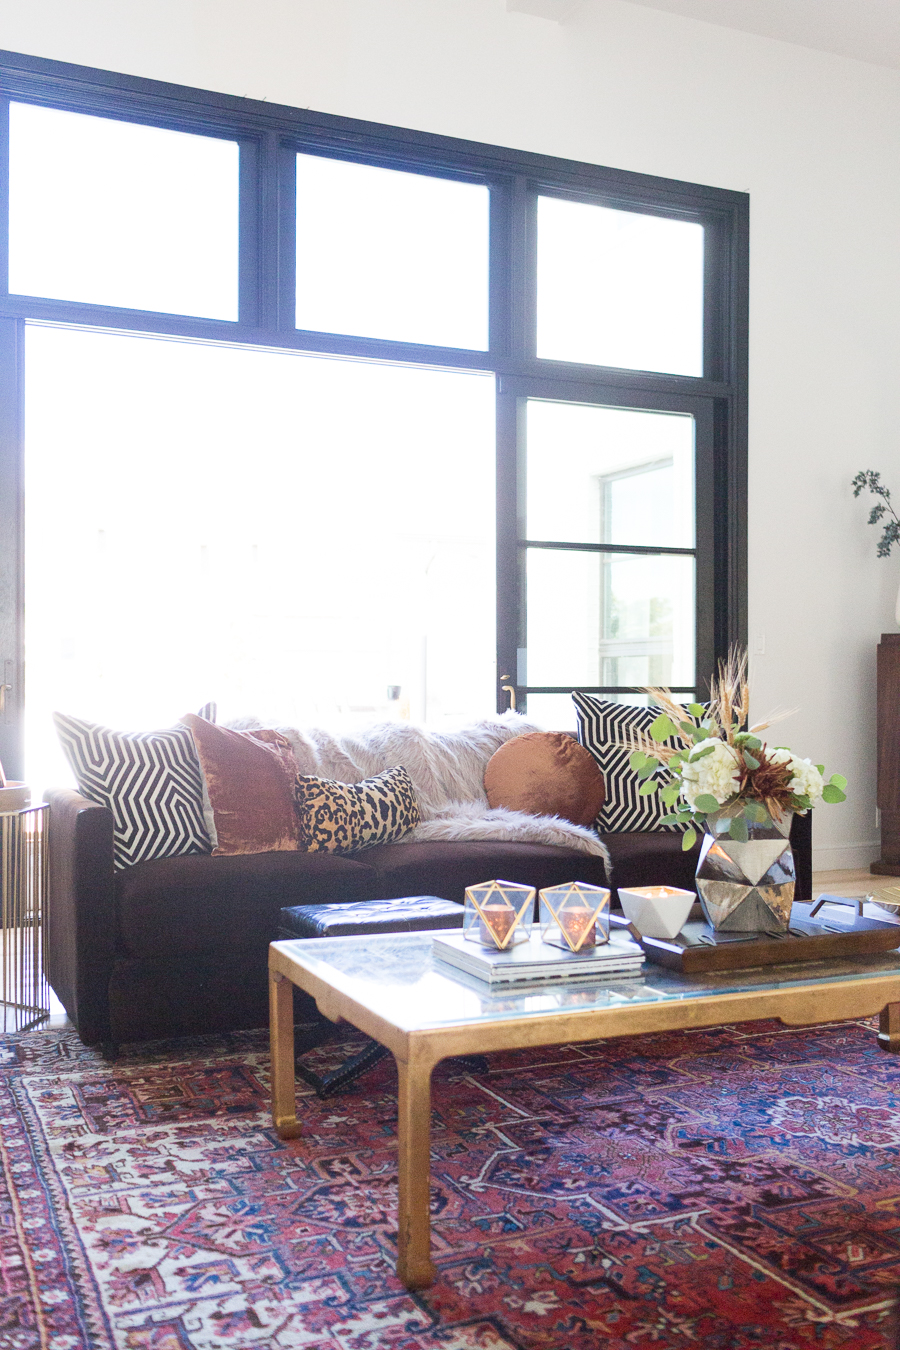 Simple Ways to Decorate for the Holidays from West Elm living room with chocolate velvet couch covered in copper velvet pillows and leopard pillows with a faux fur throw gold coffee table with a wood tray styled for Thanksgiving